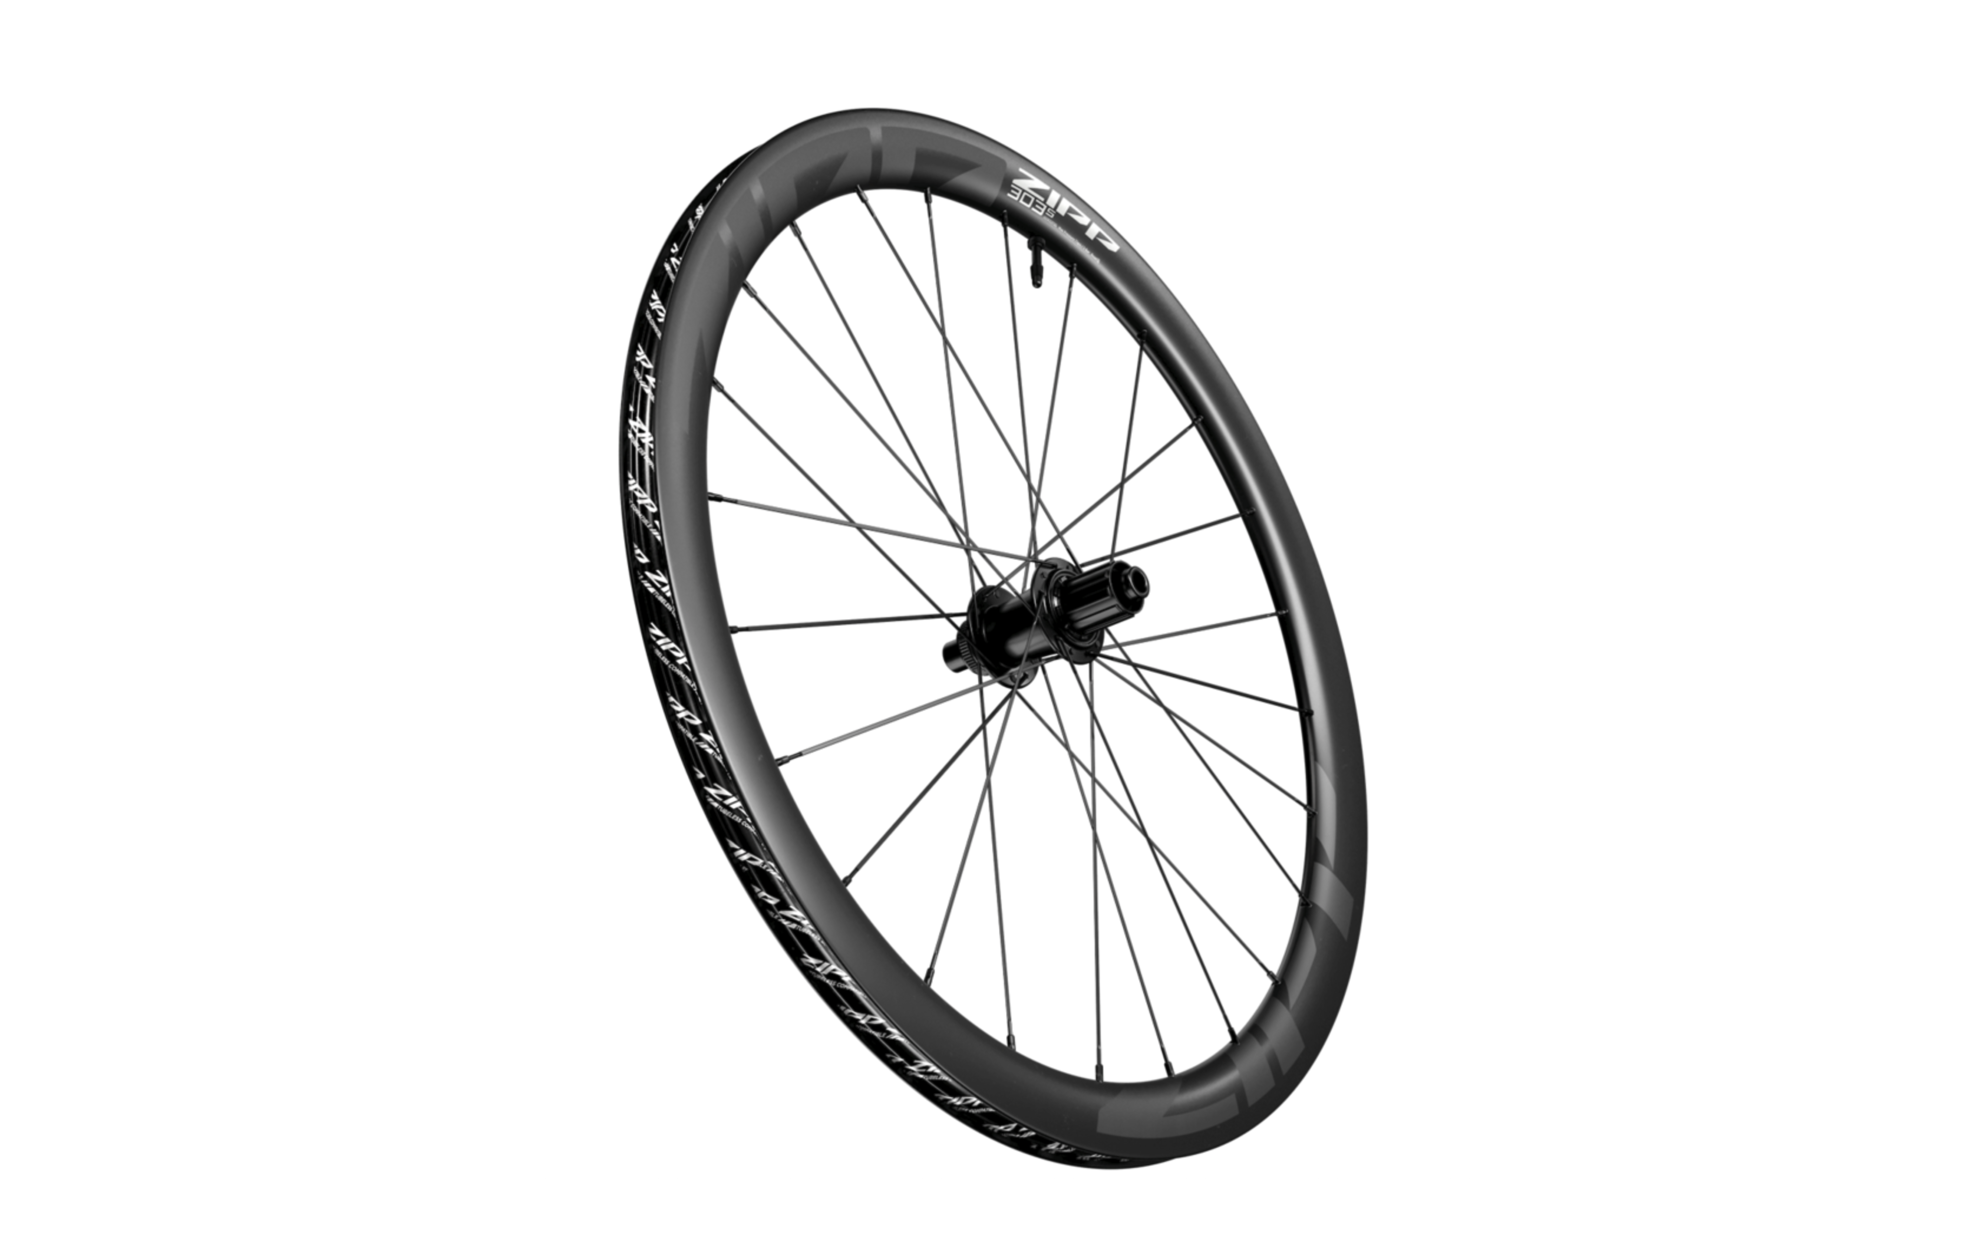 Picture of ZIPP SET RUOTE 303 S CARBON TUBELESS DISC-BRAKE XDR CENTER LOCK